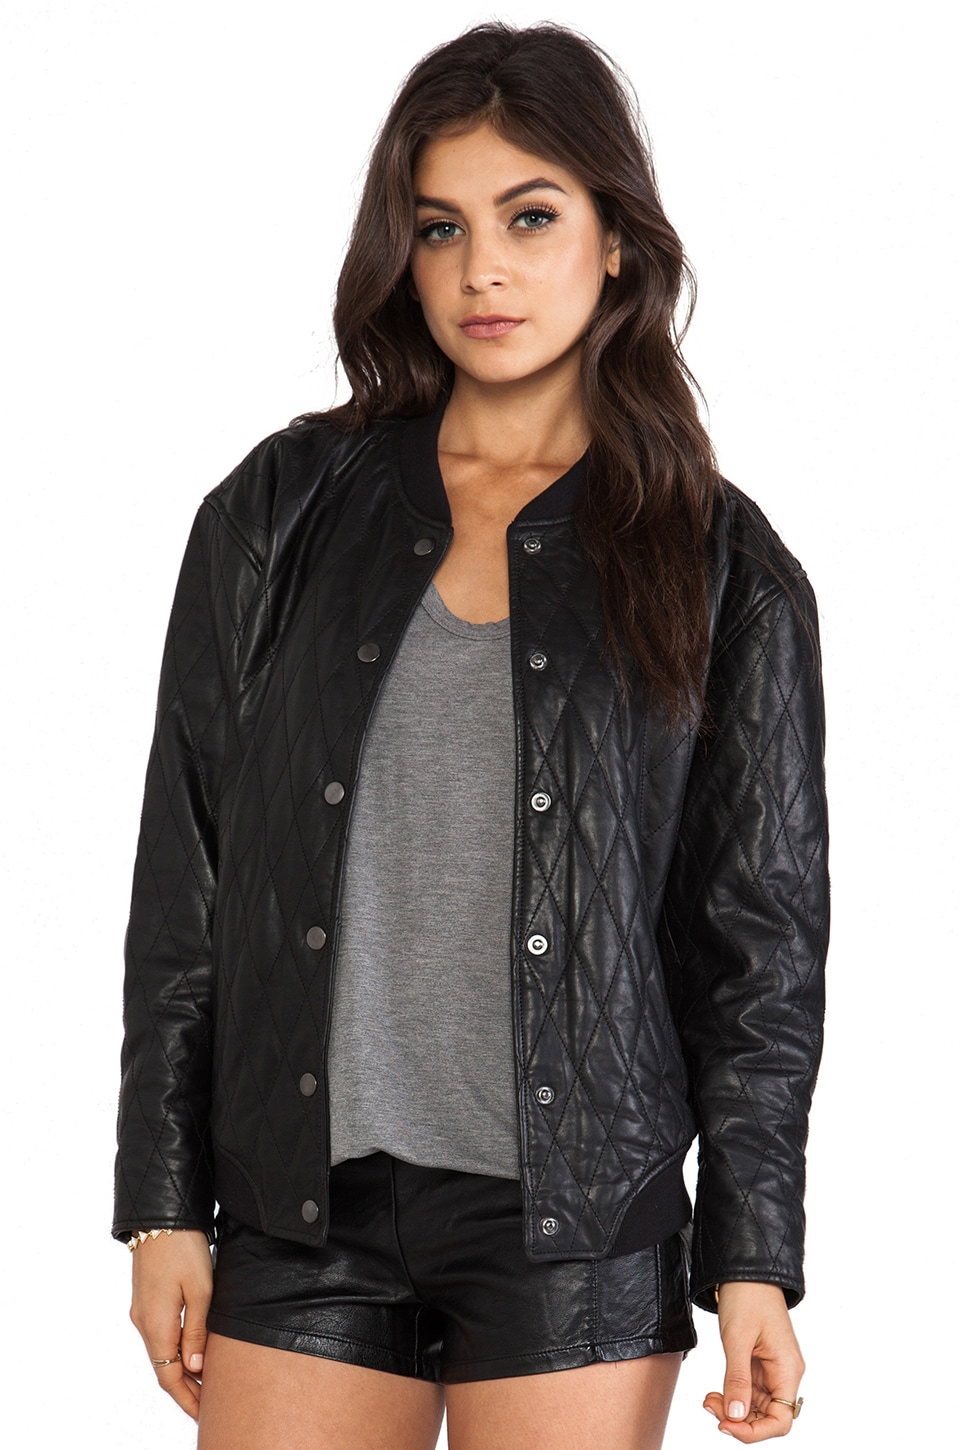 BLK DNM Leather Jacket 72 in Black